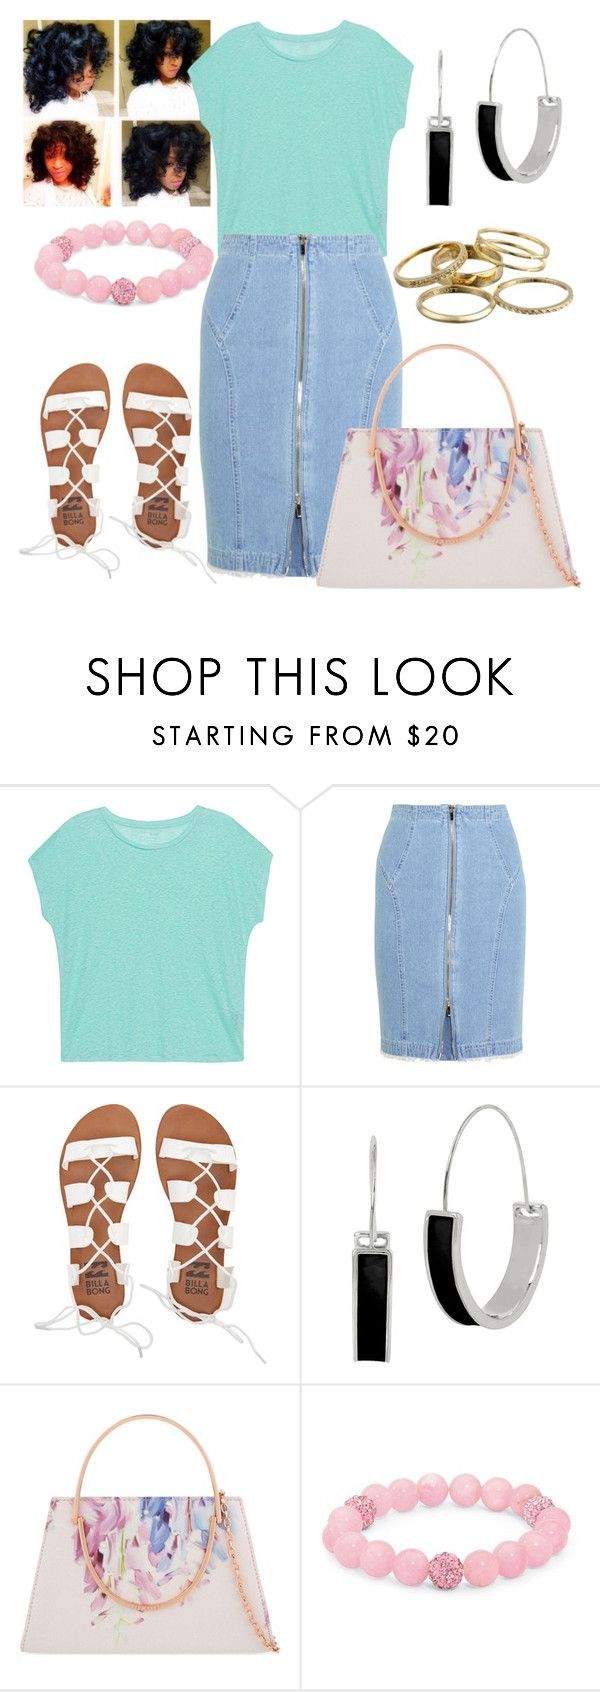 """""""Untitled #473"""" by kyla-figgs ❤ liked on Polyvore featuring Majestic Filatures, Steve J & Yoni P, Billabong, Kenneth Cole, Ted Baker, Palm Beach Jewelry and Kendra Scott"""